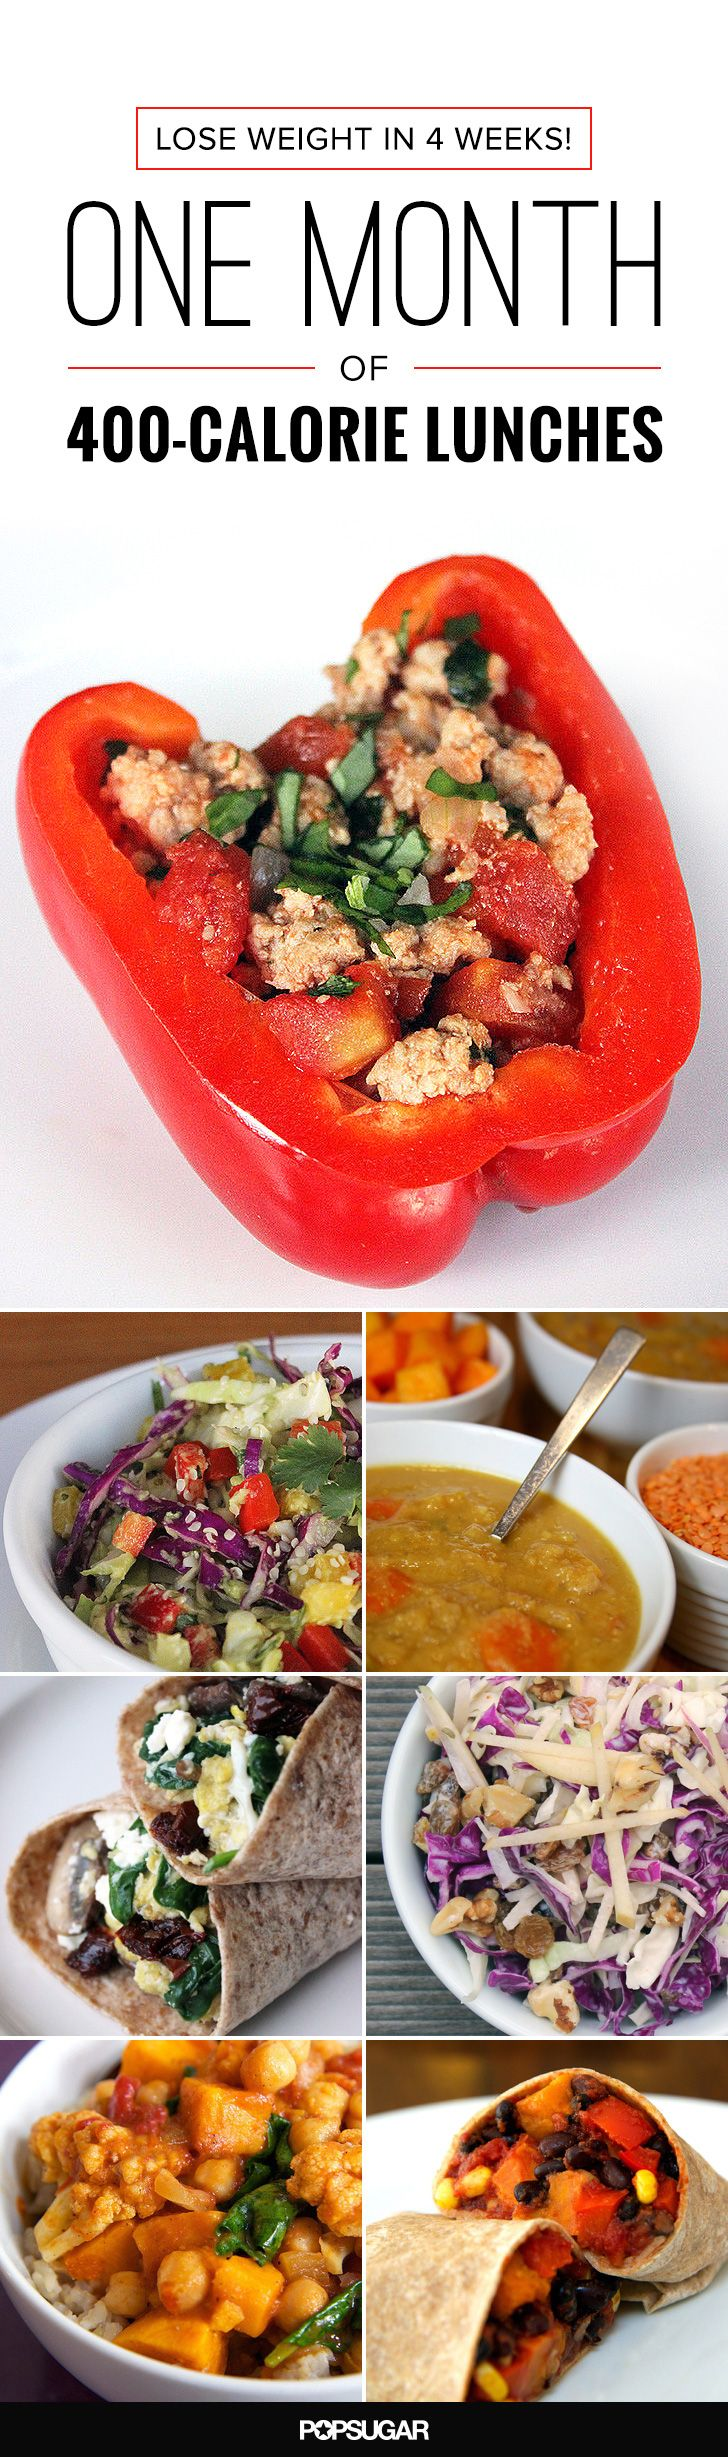 1 Month of 400-Calorie Lunches